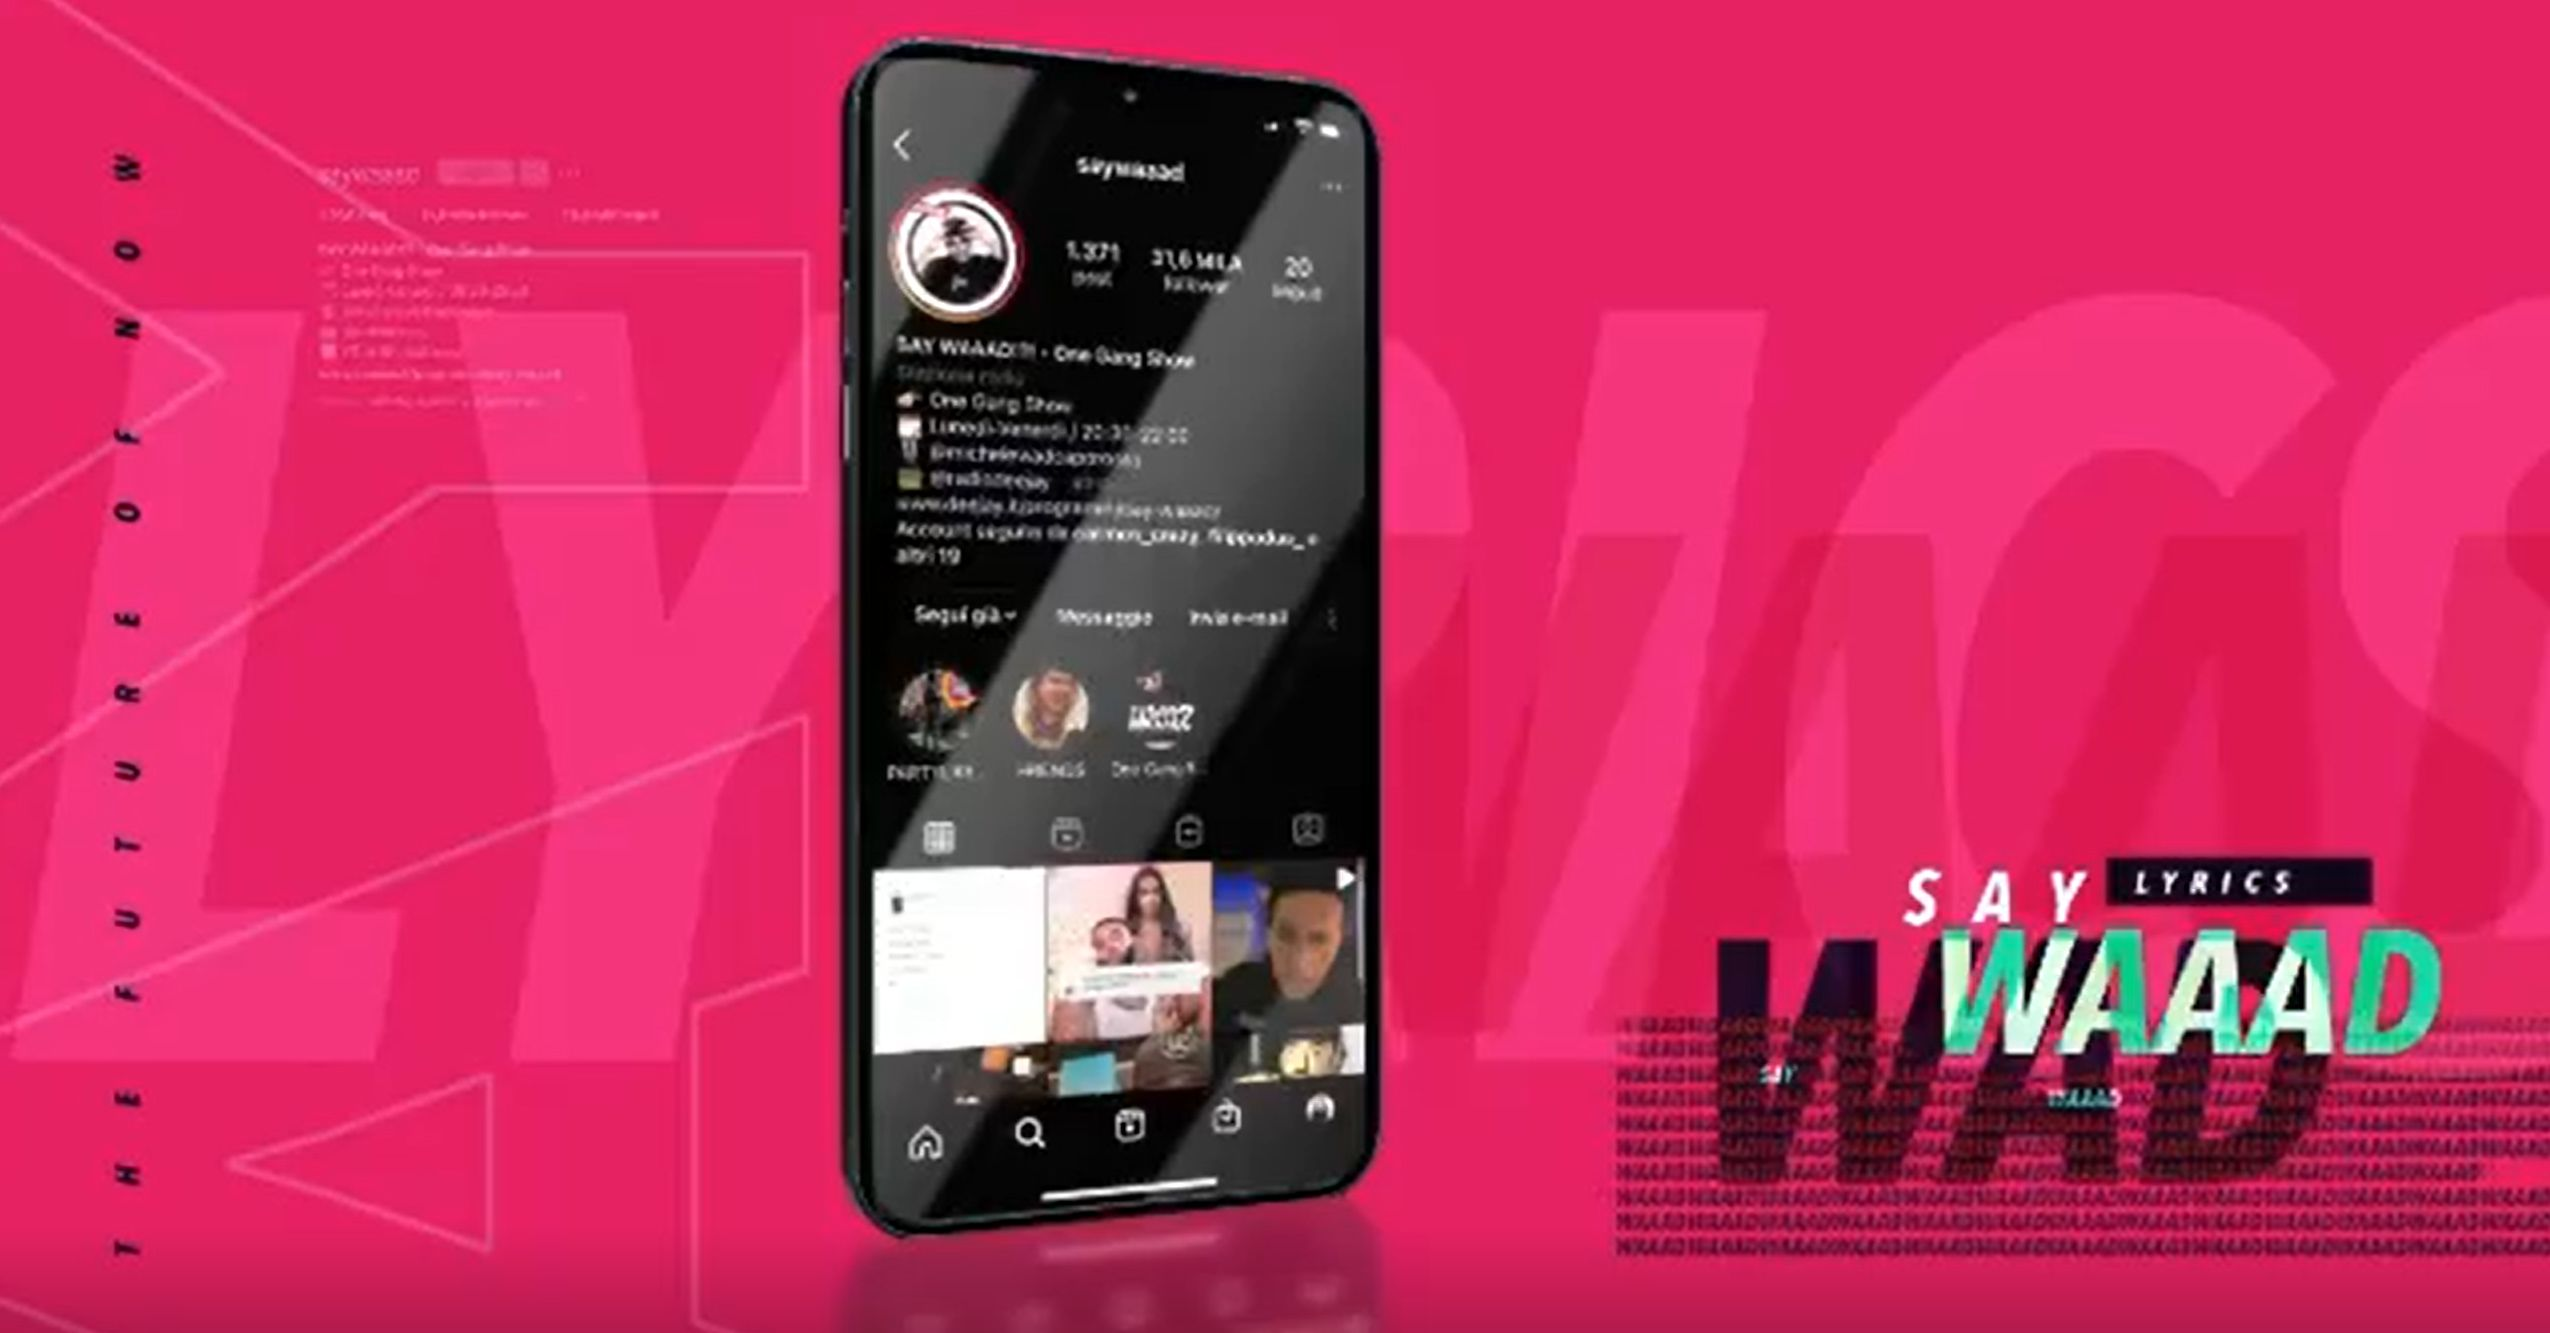 Say Waaad è anche su Deejay Tv e Twitch: appuntamento alle 20.30